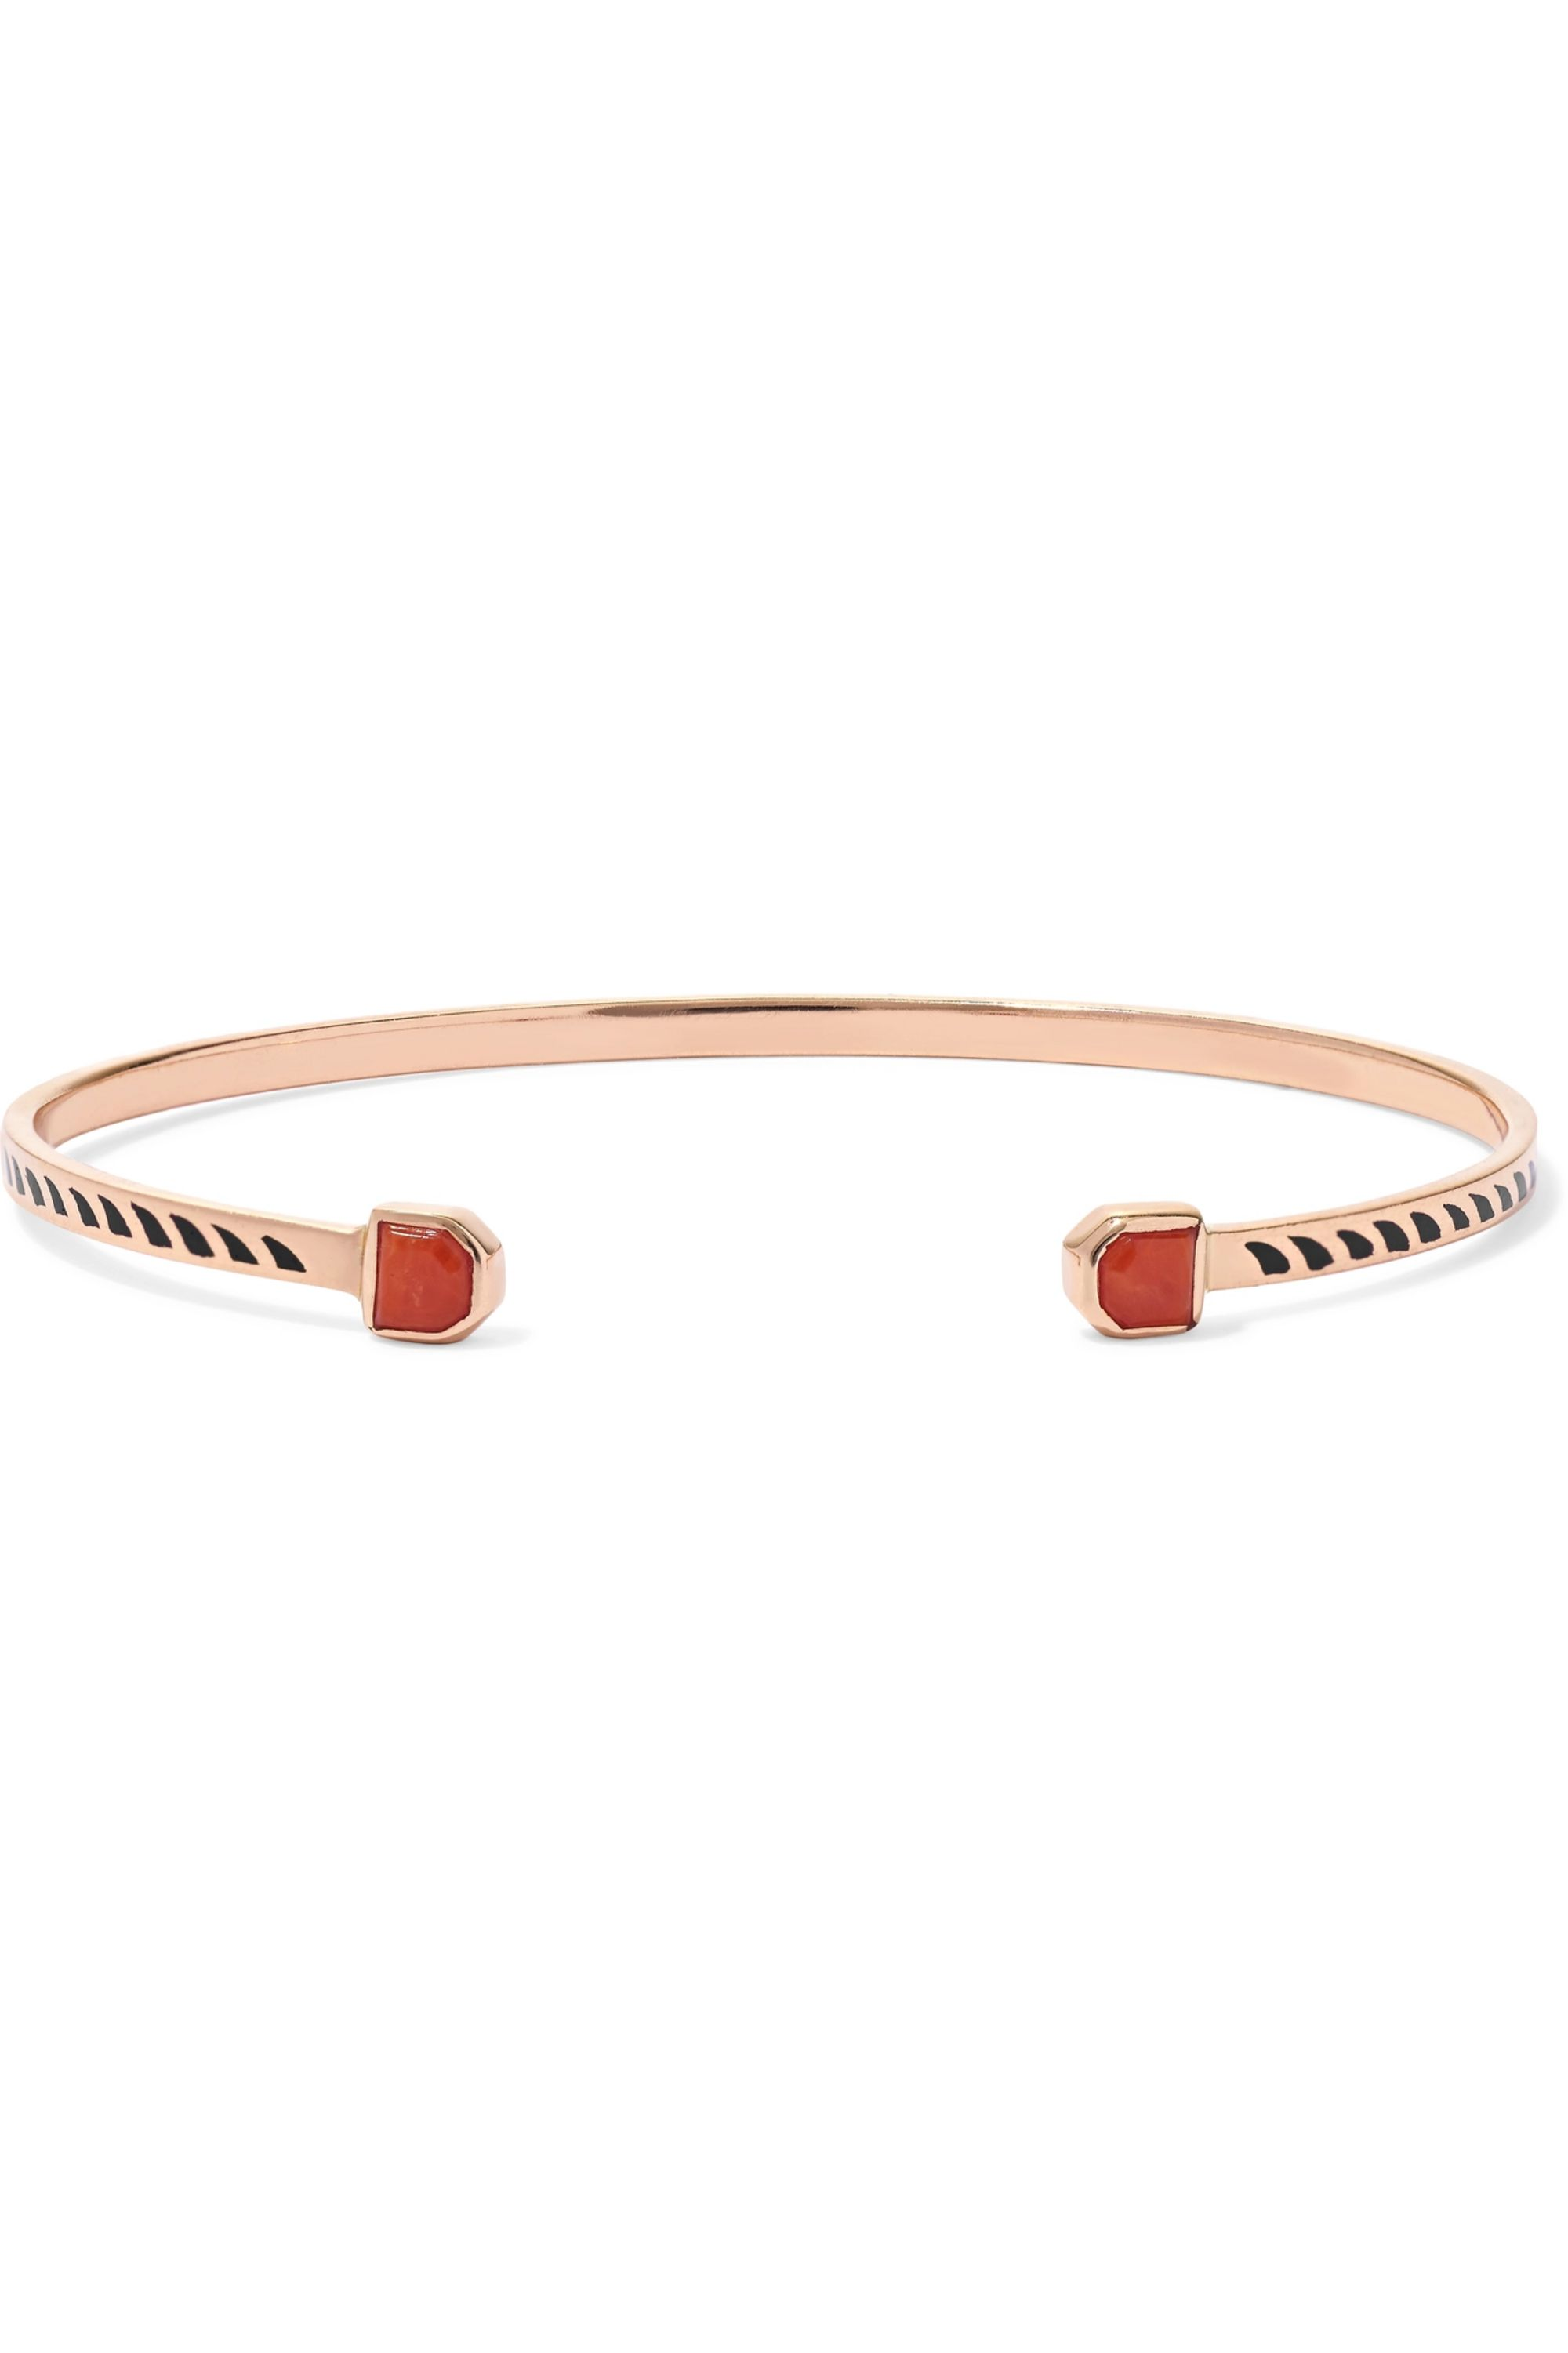 Dezso by Sara Beltrán Deco 18-karat rose gold, coral and enamel cuff